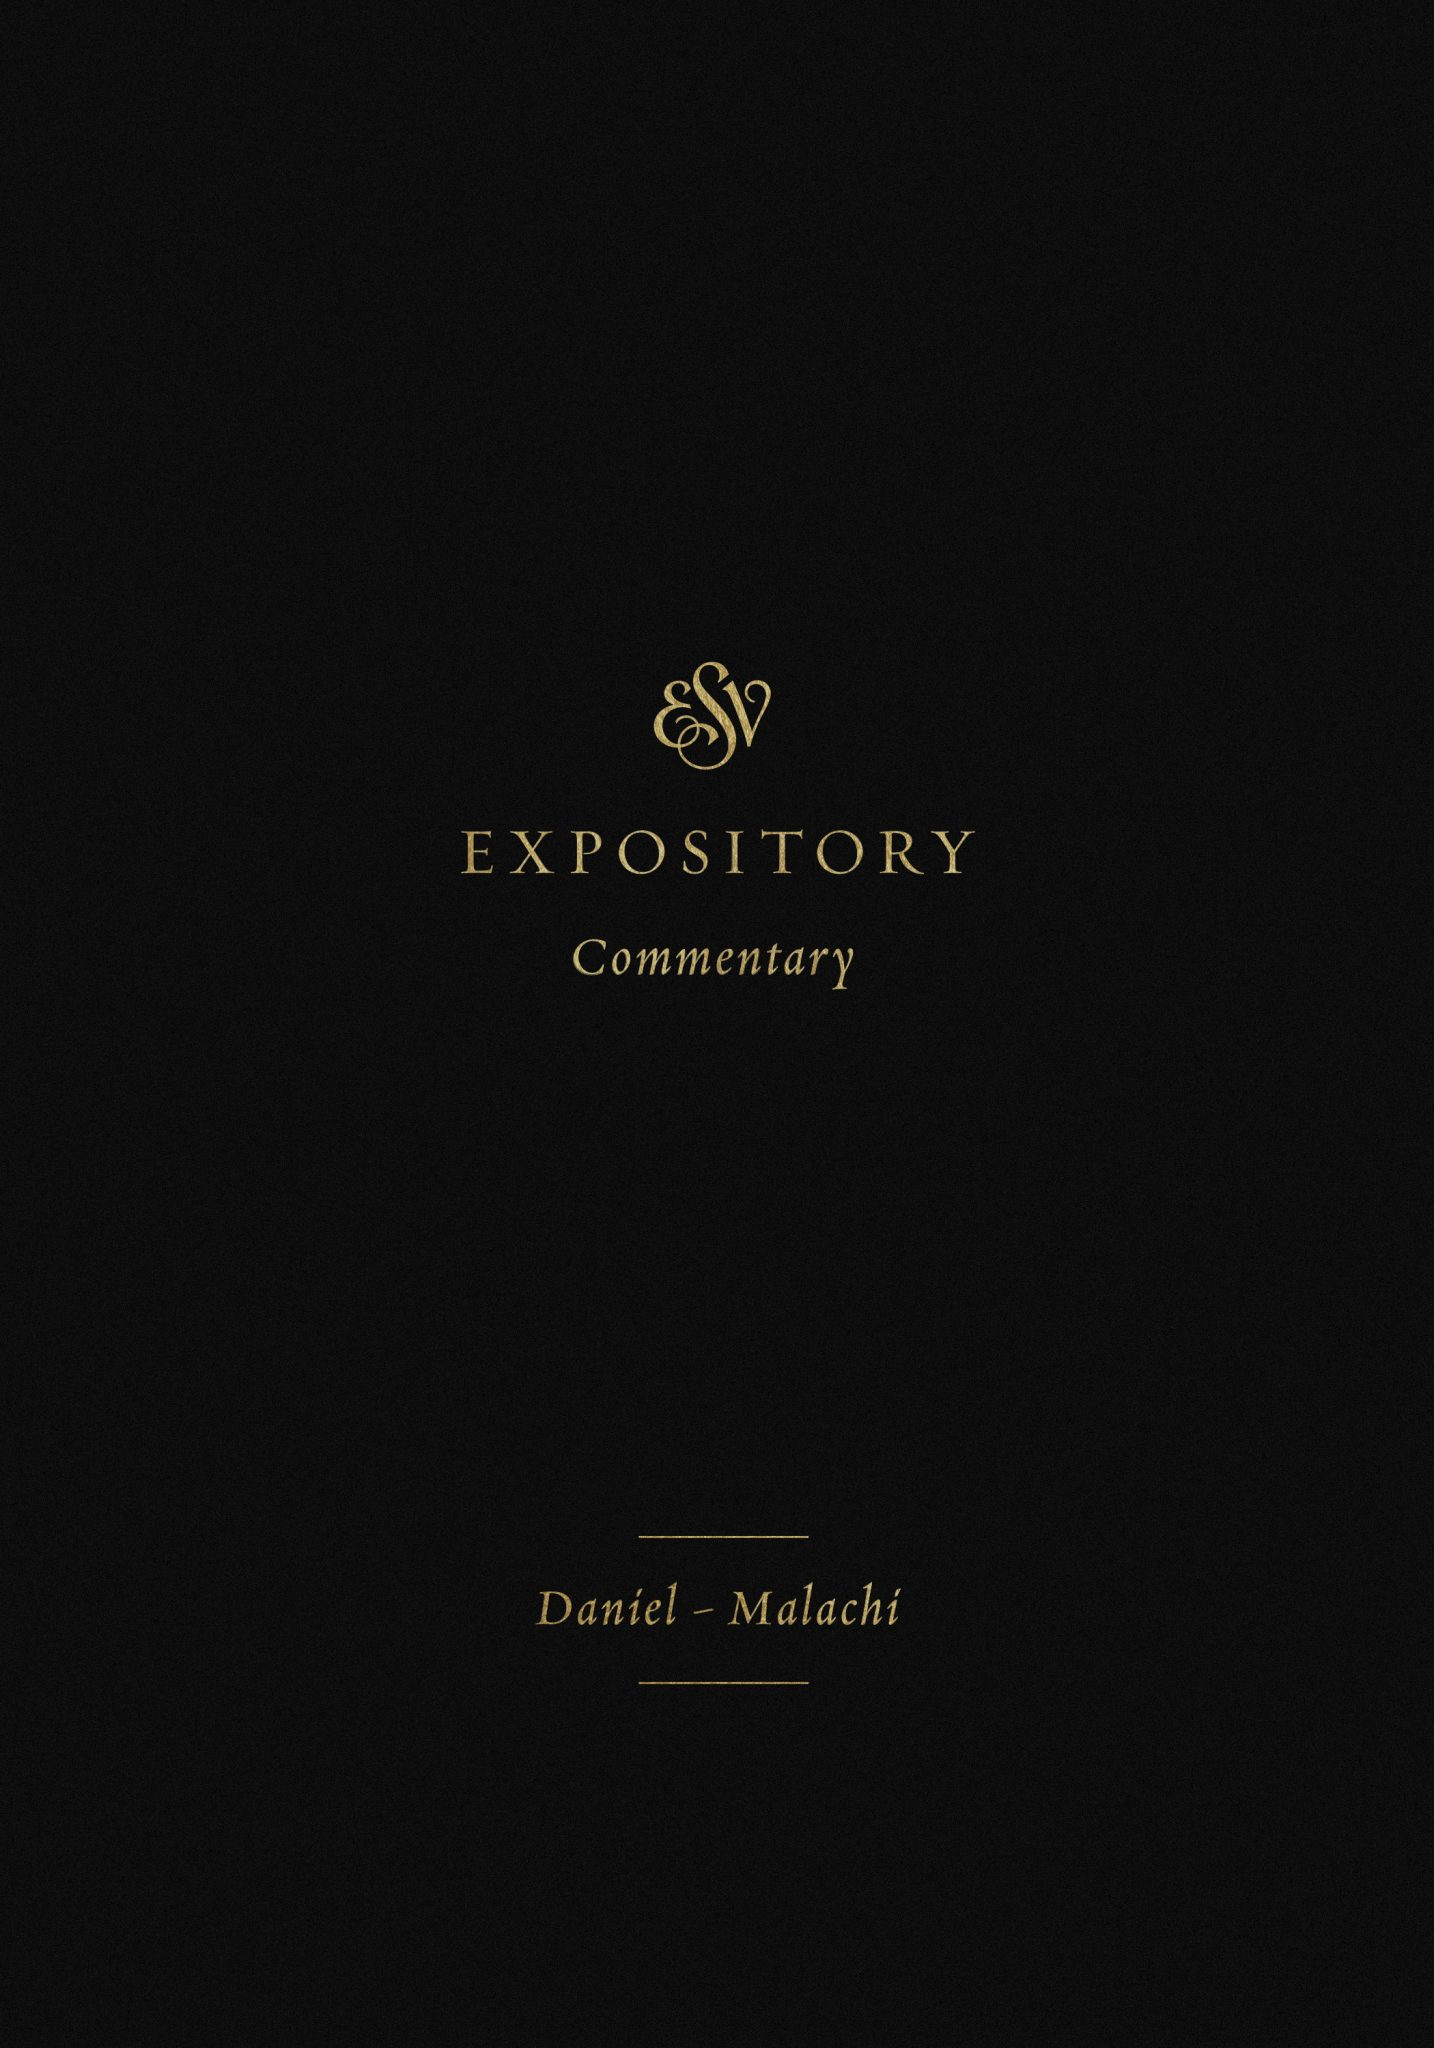 A First Look at the ESV Expository Commentary - The Gospel Coalition